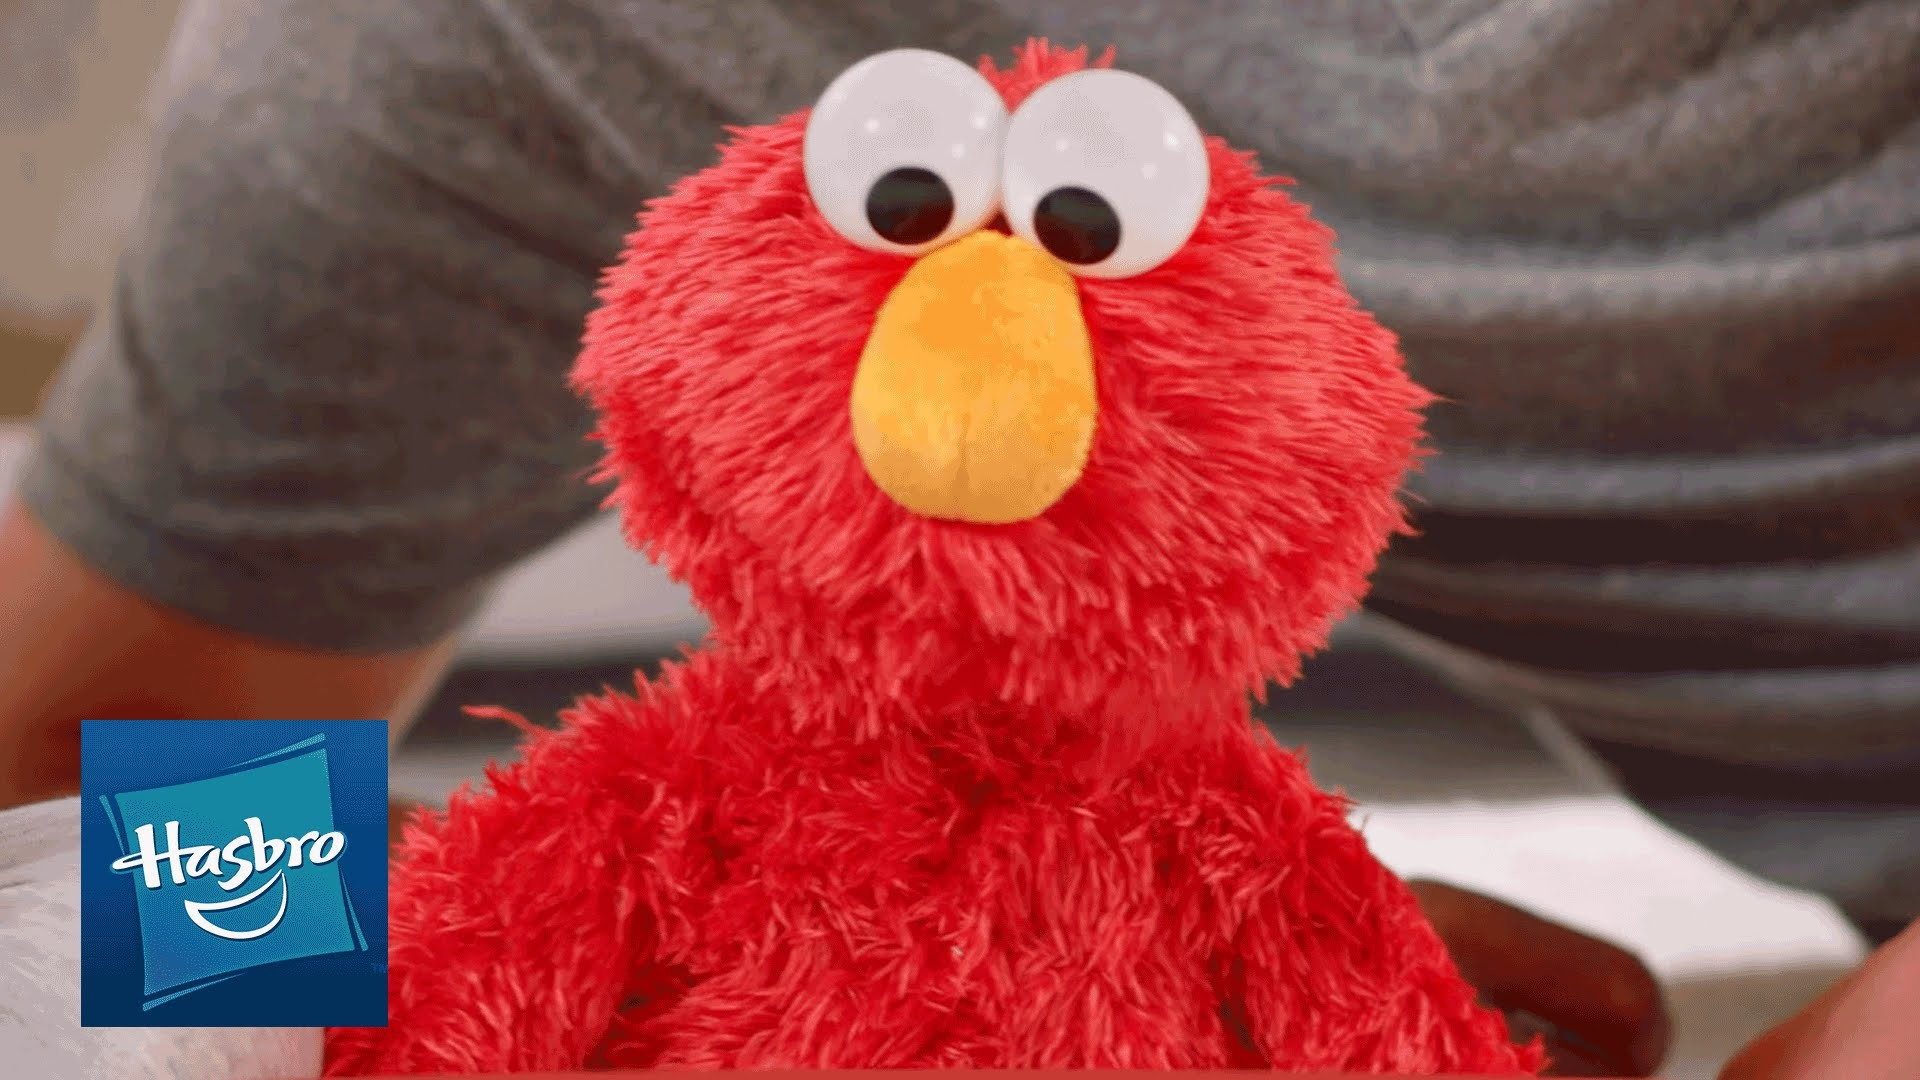 Elmo wallpaper 56 images 1920x1200 hd cookie monster wallpapers hd wallpapers windows tablet 4k high definition samsung wallpapers free download 19201200 wallpaper hd voltagebd Gallery